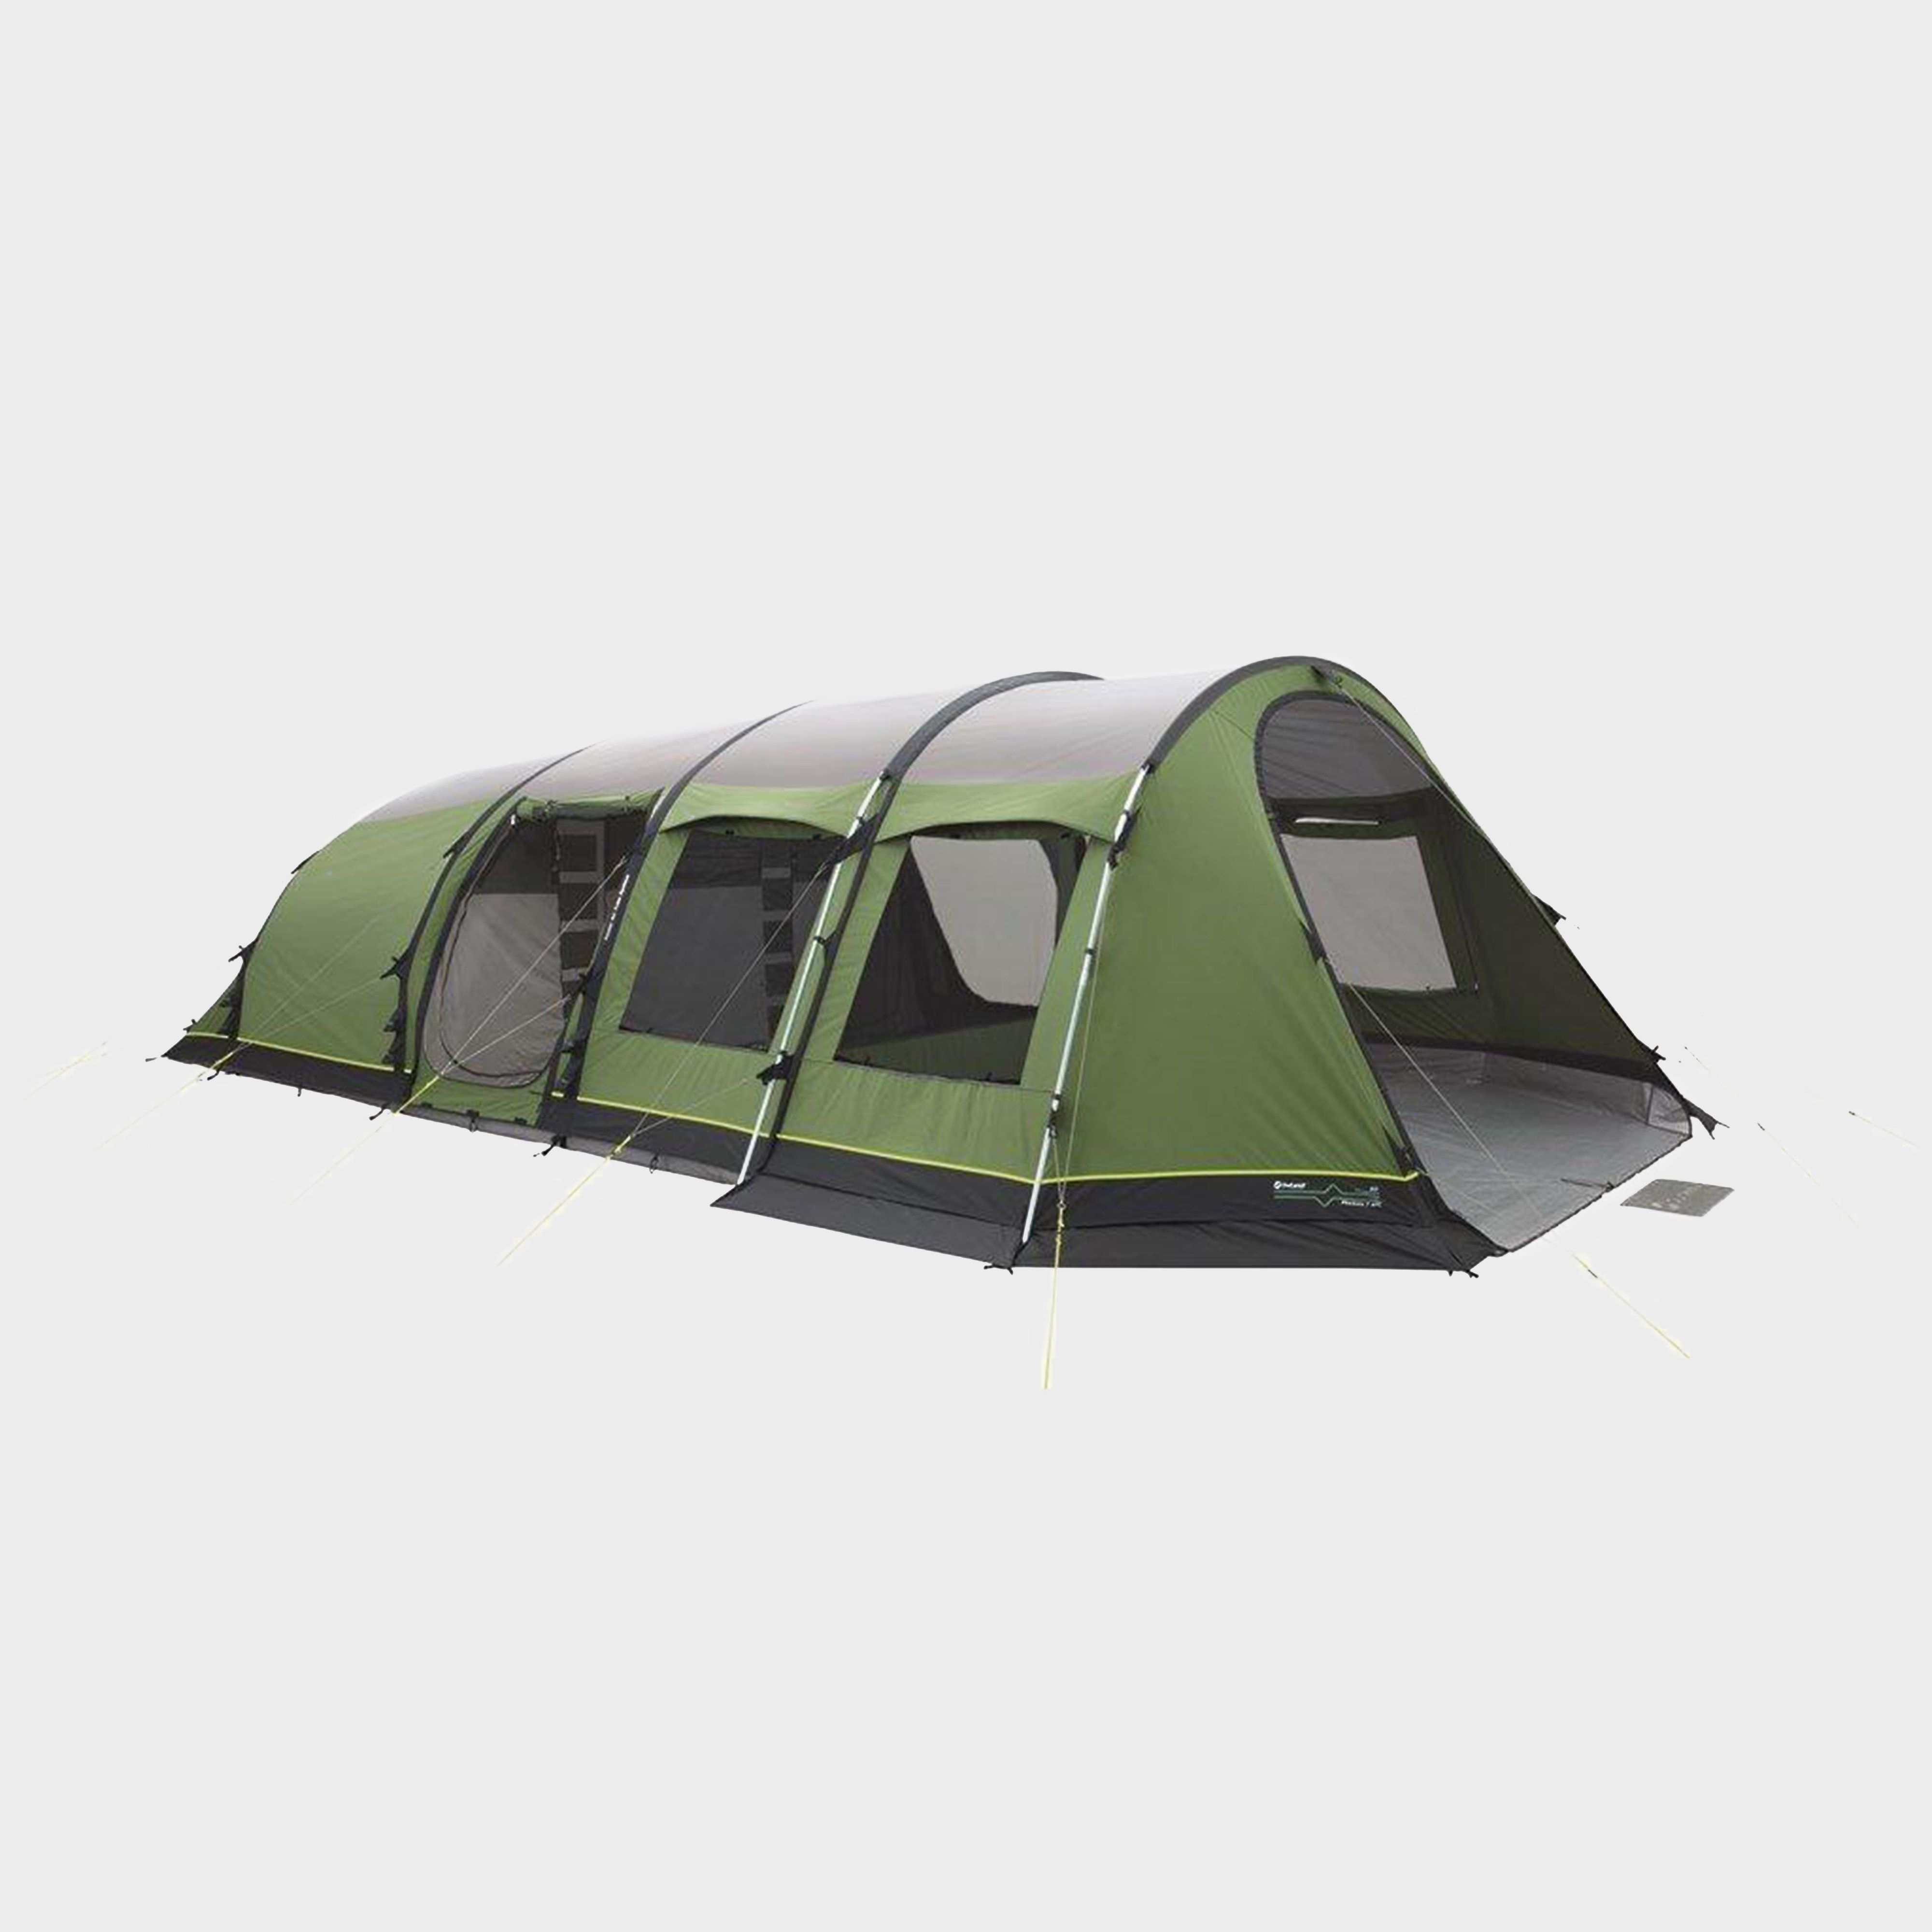 OUTWELL Phoenix 7ATC 7 Person Inflatable Tent